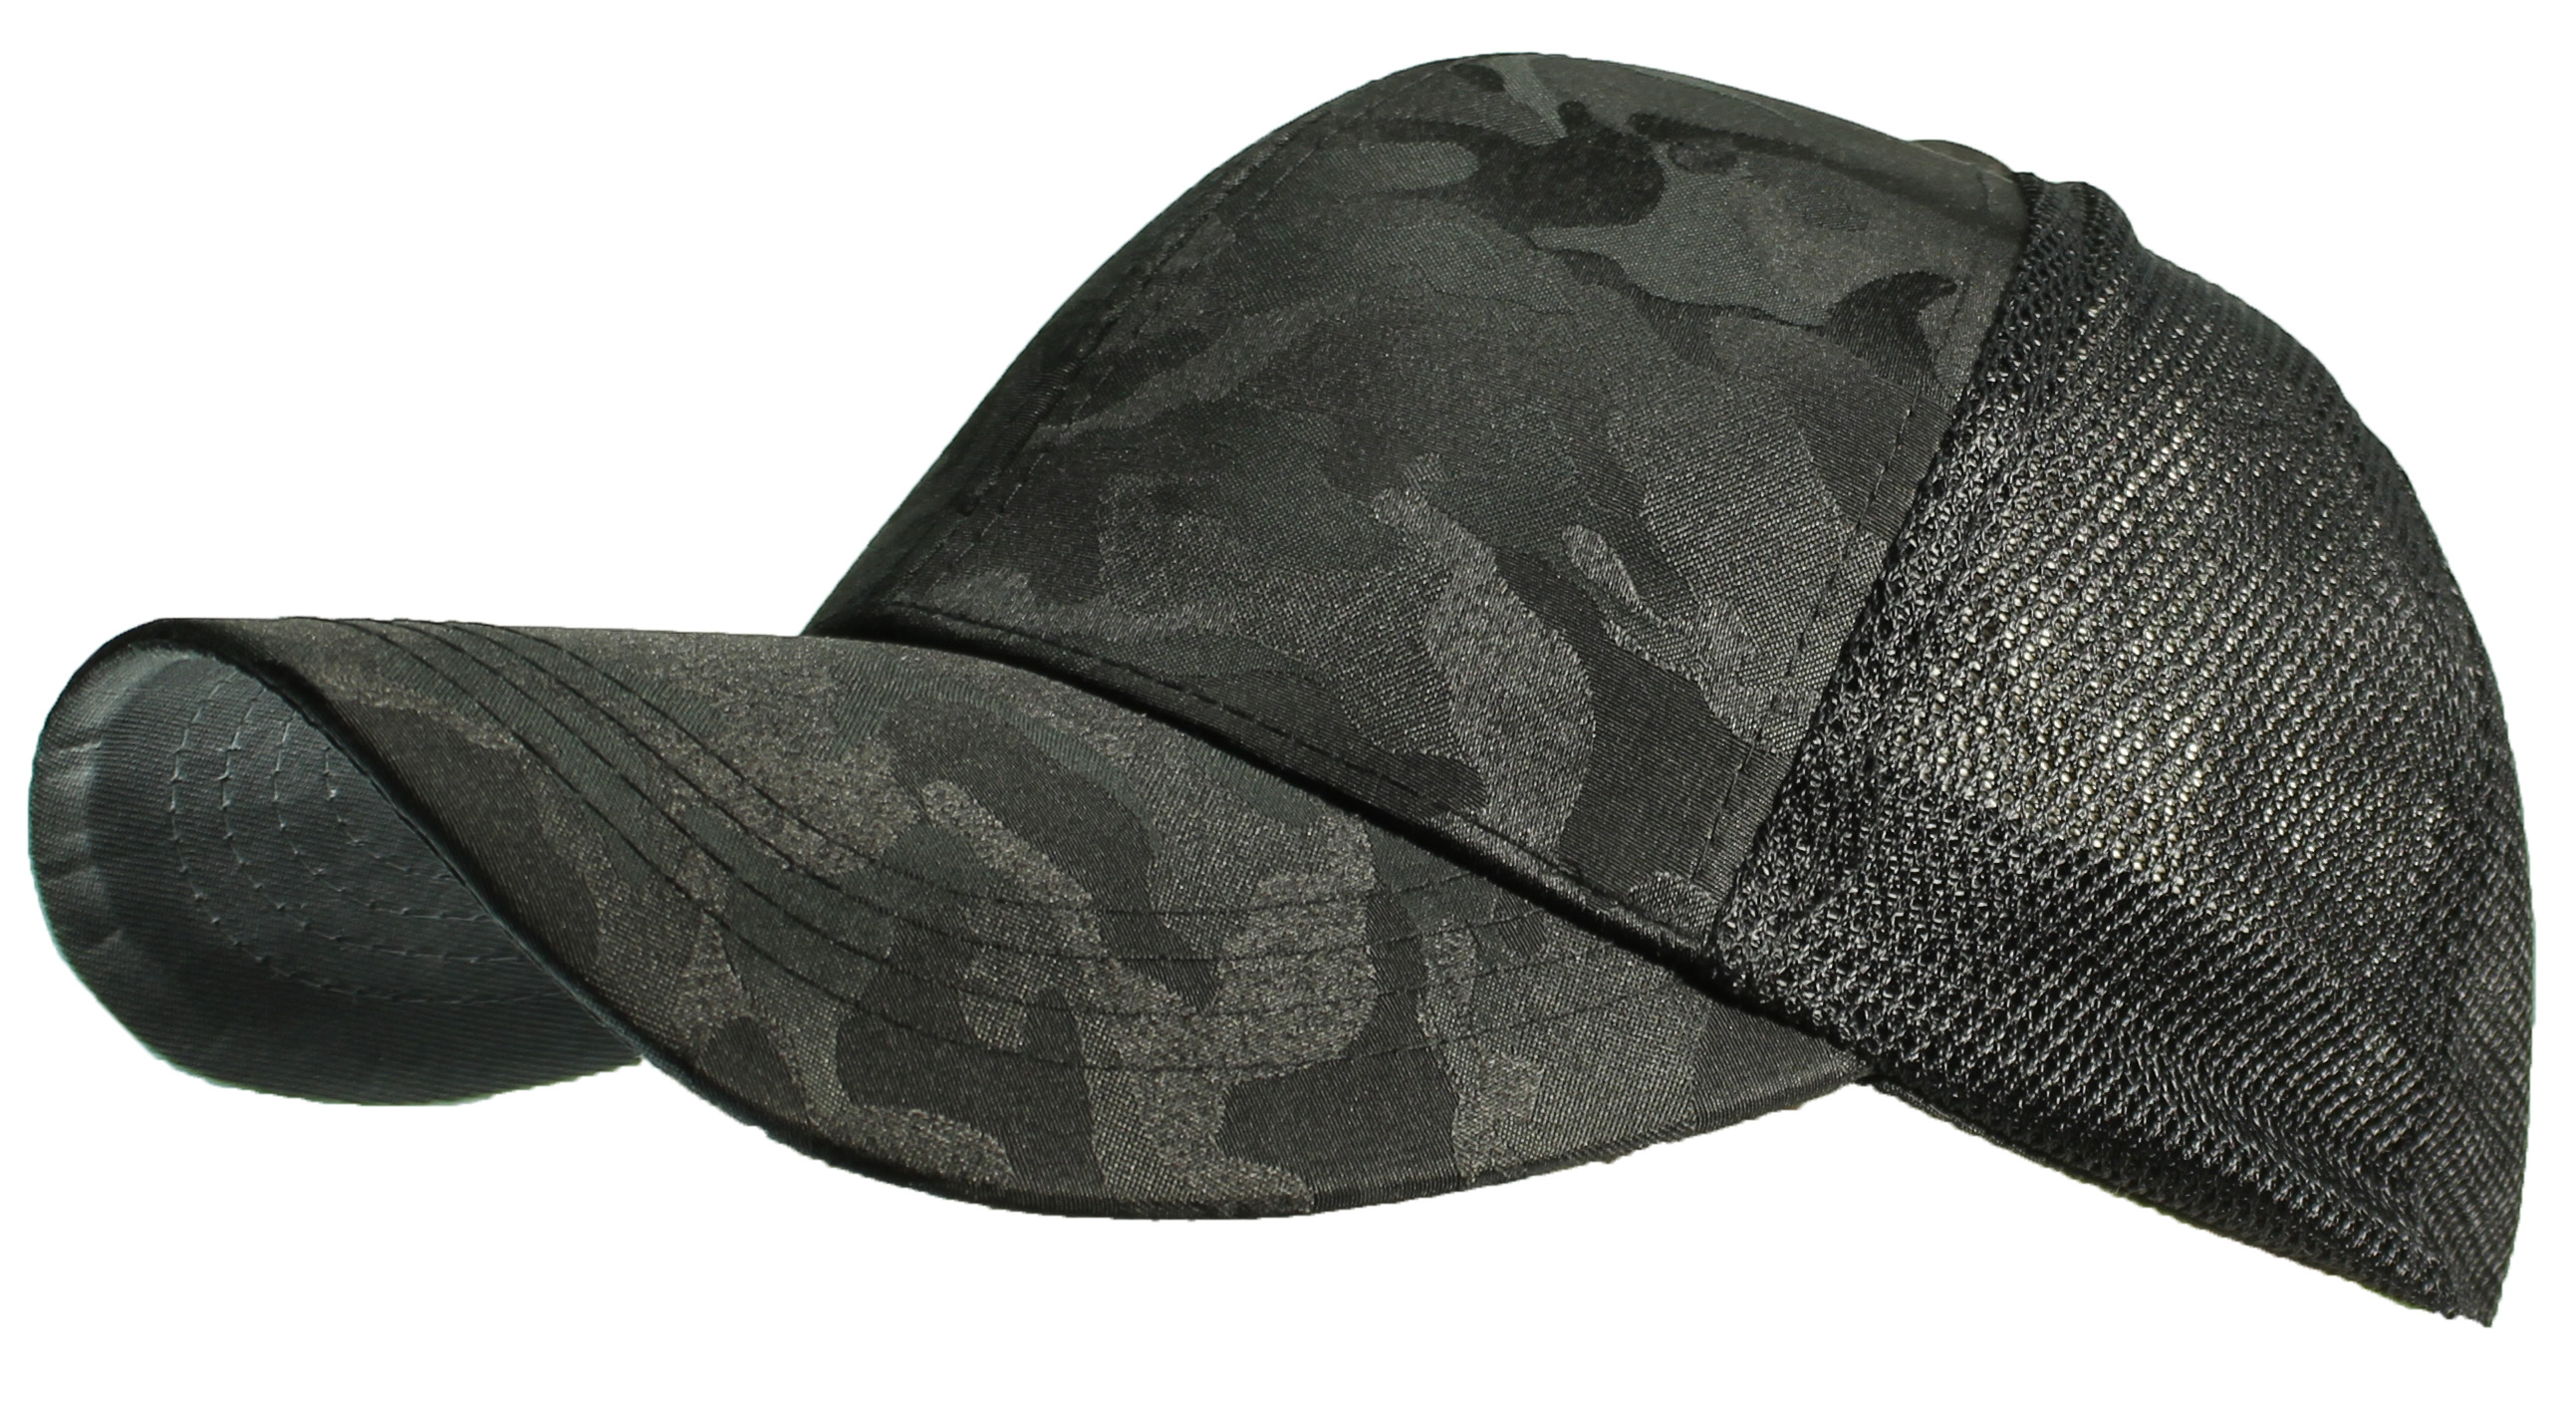 Tropic Hats Adult Camouflage Mesh Trucker Snapback Cap W/Pre-Curved Bill